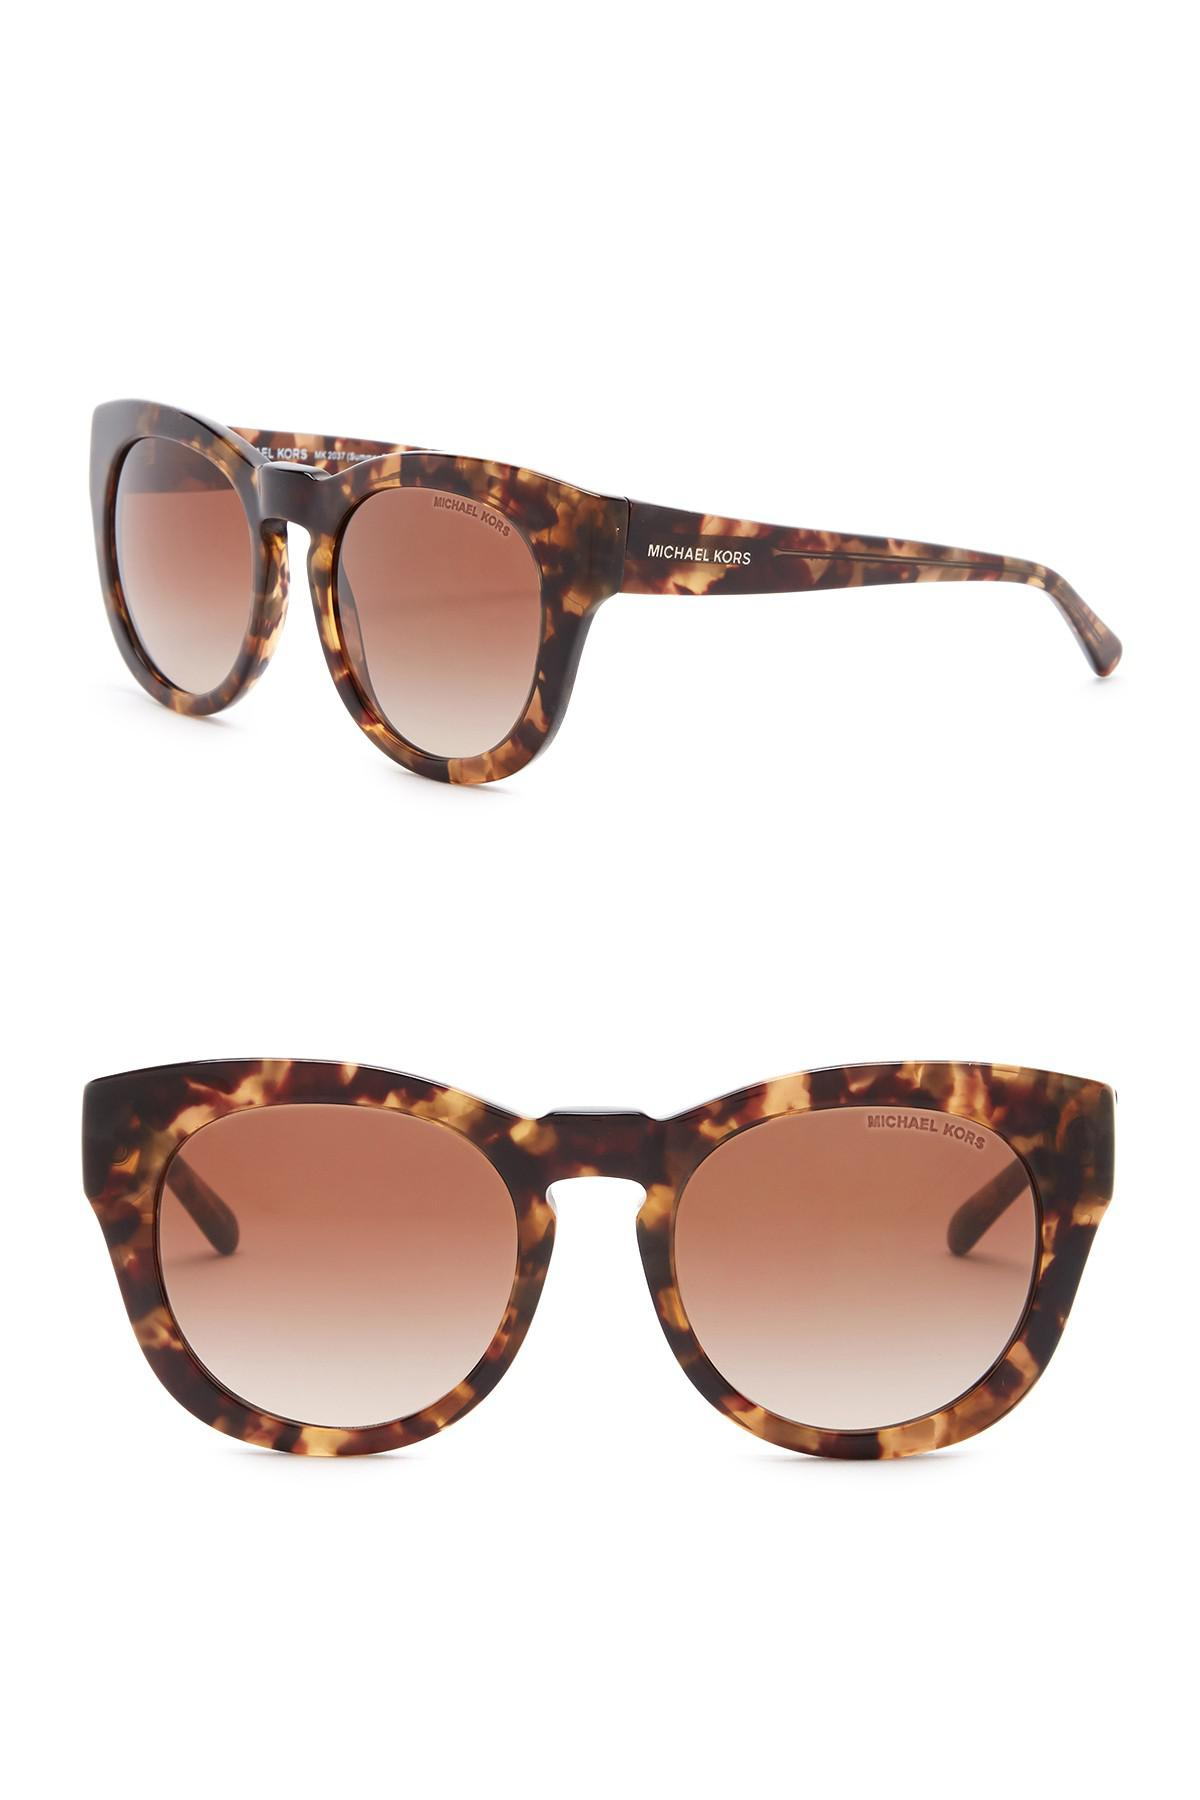 d107cb4e49 Lyst - Michael Kors Summer Breeze 50mm Rounded Sunglasses in Brown